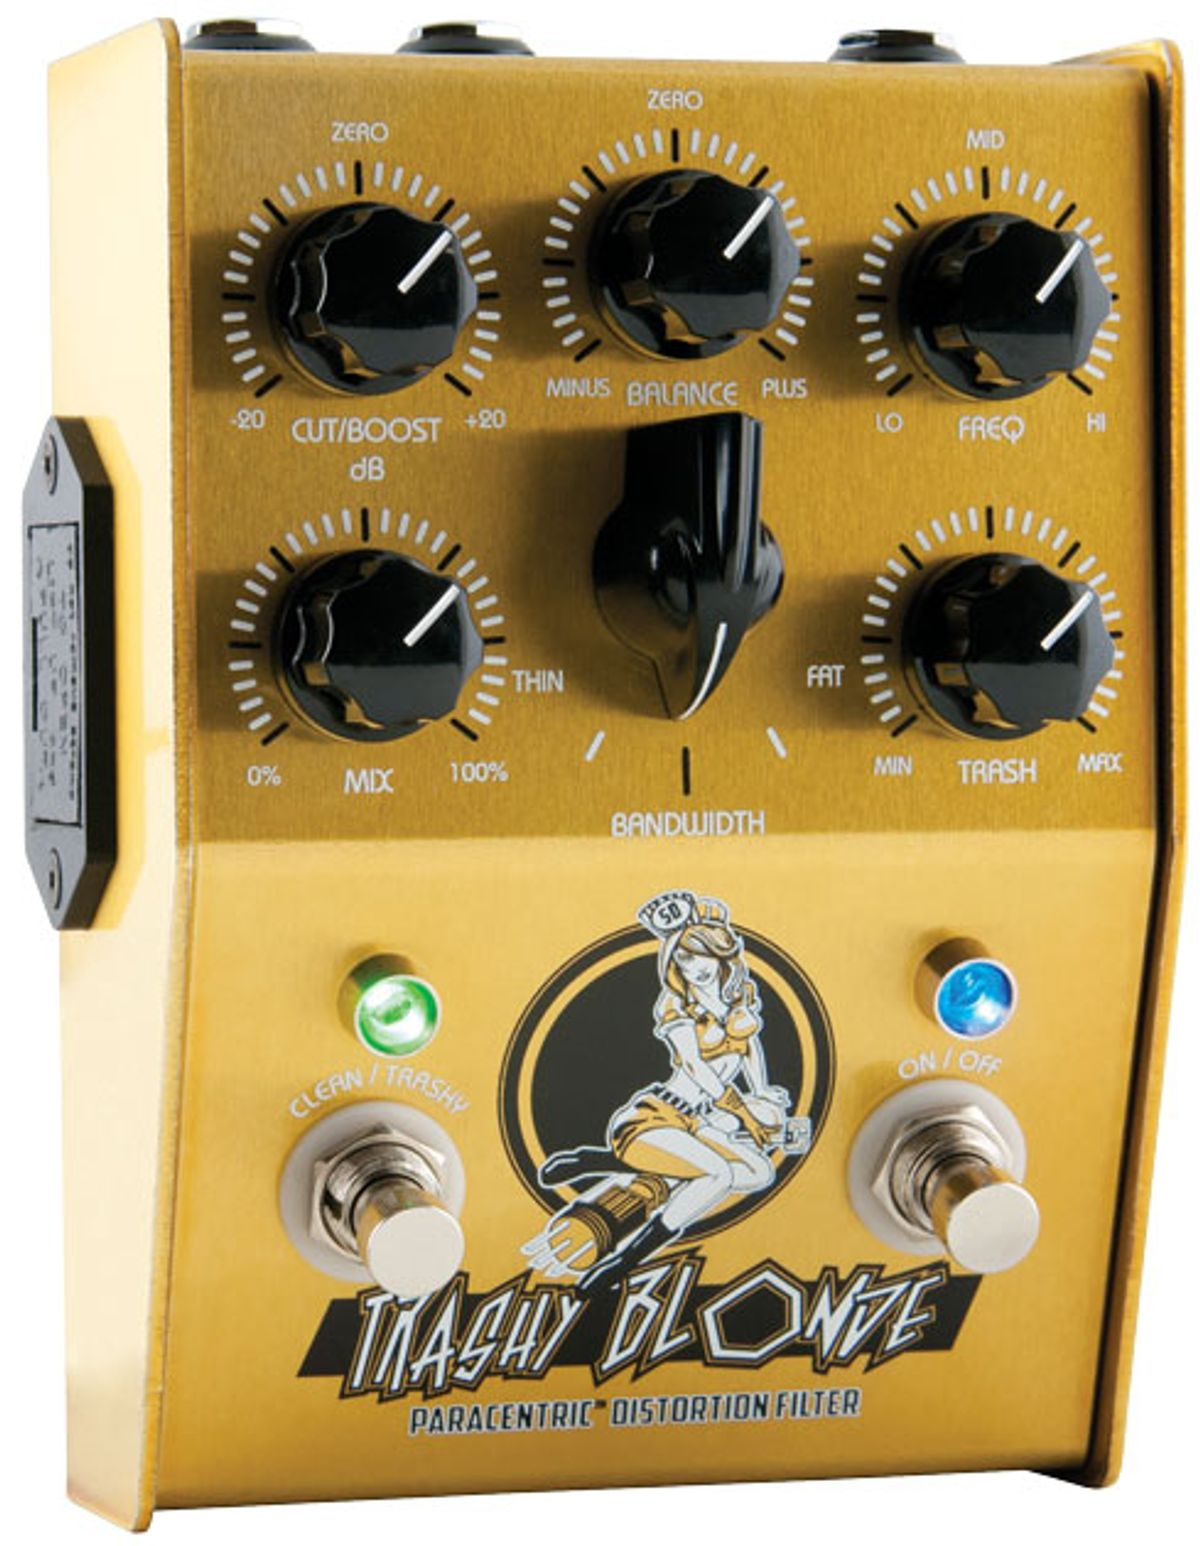 Stone Deaf Effects Trashy Blonde Paracentric Distortion Filter Review